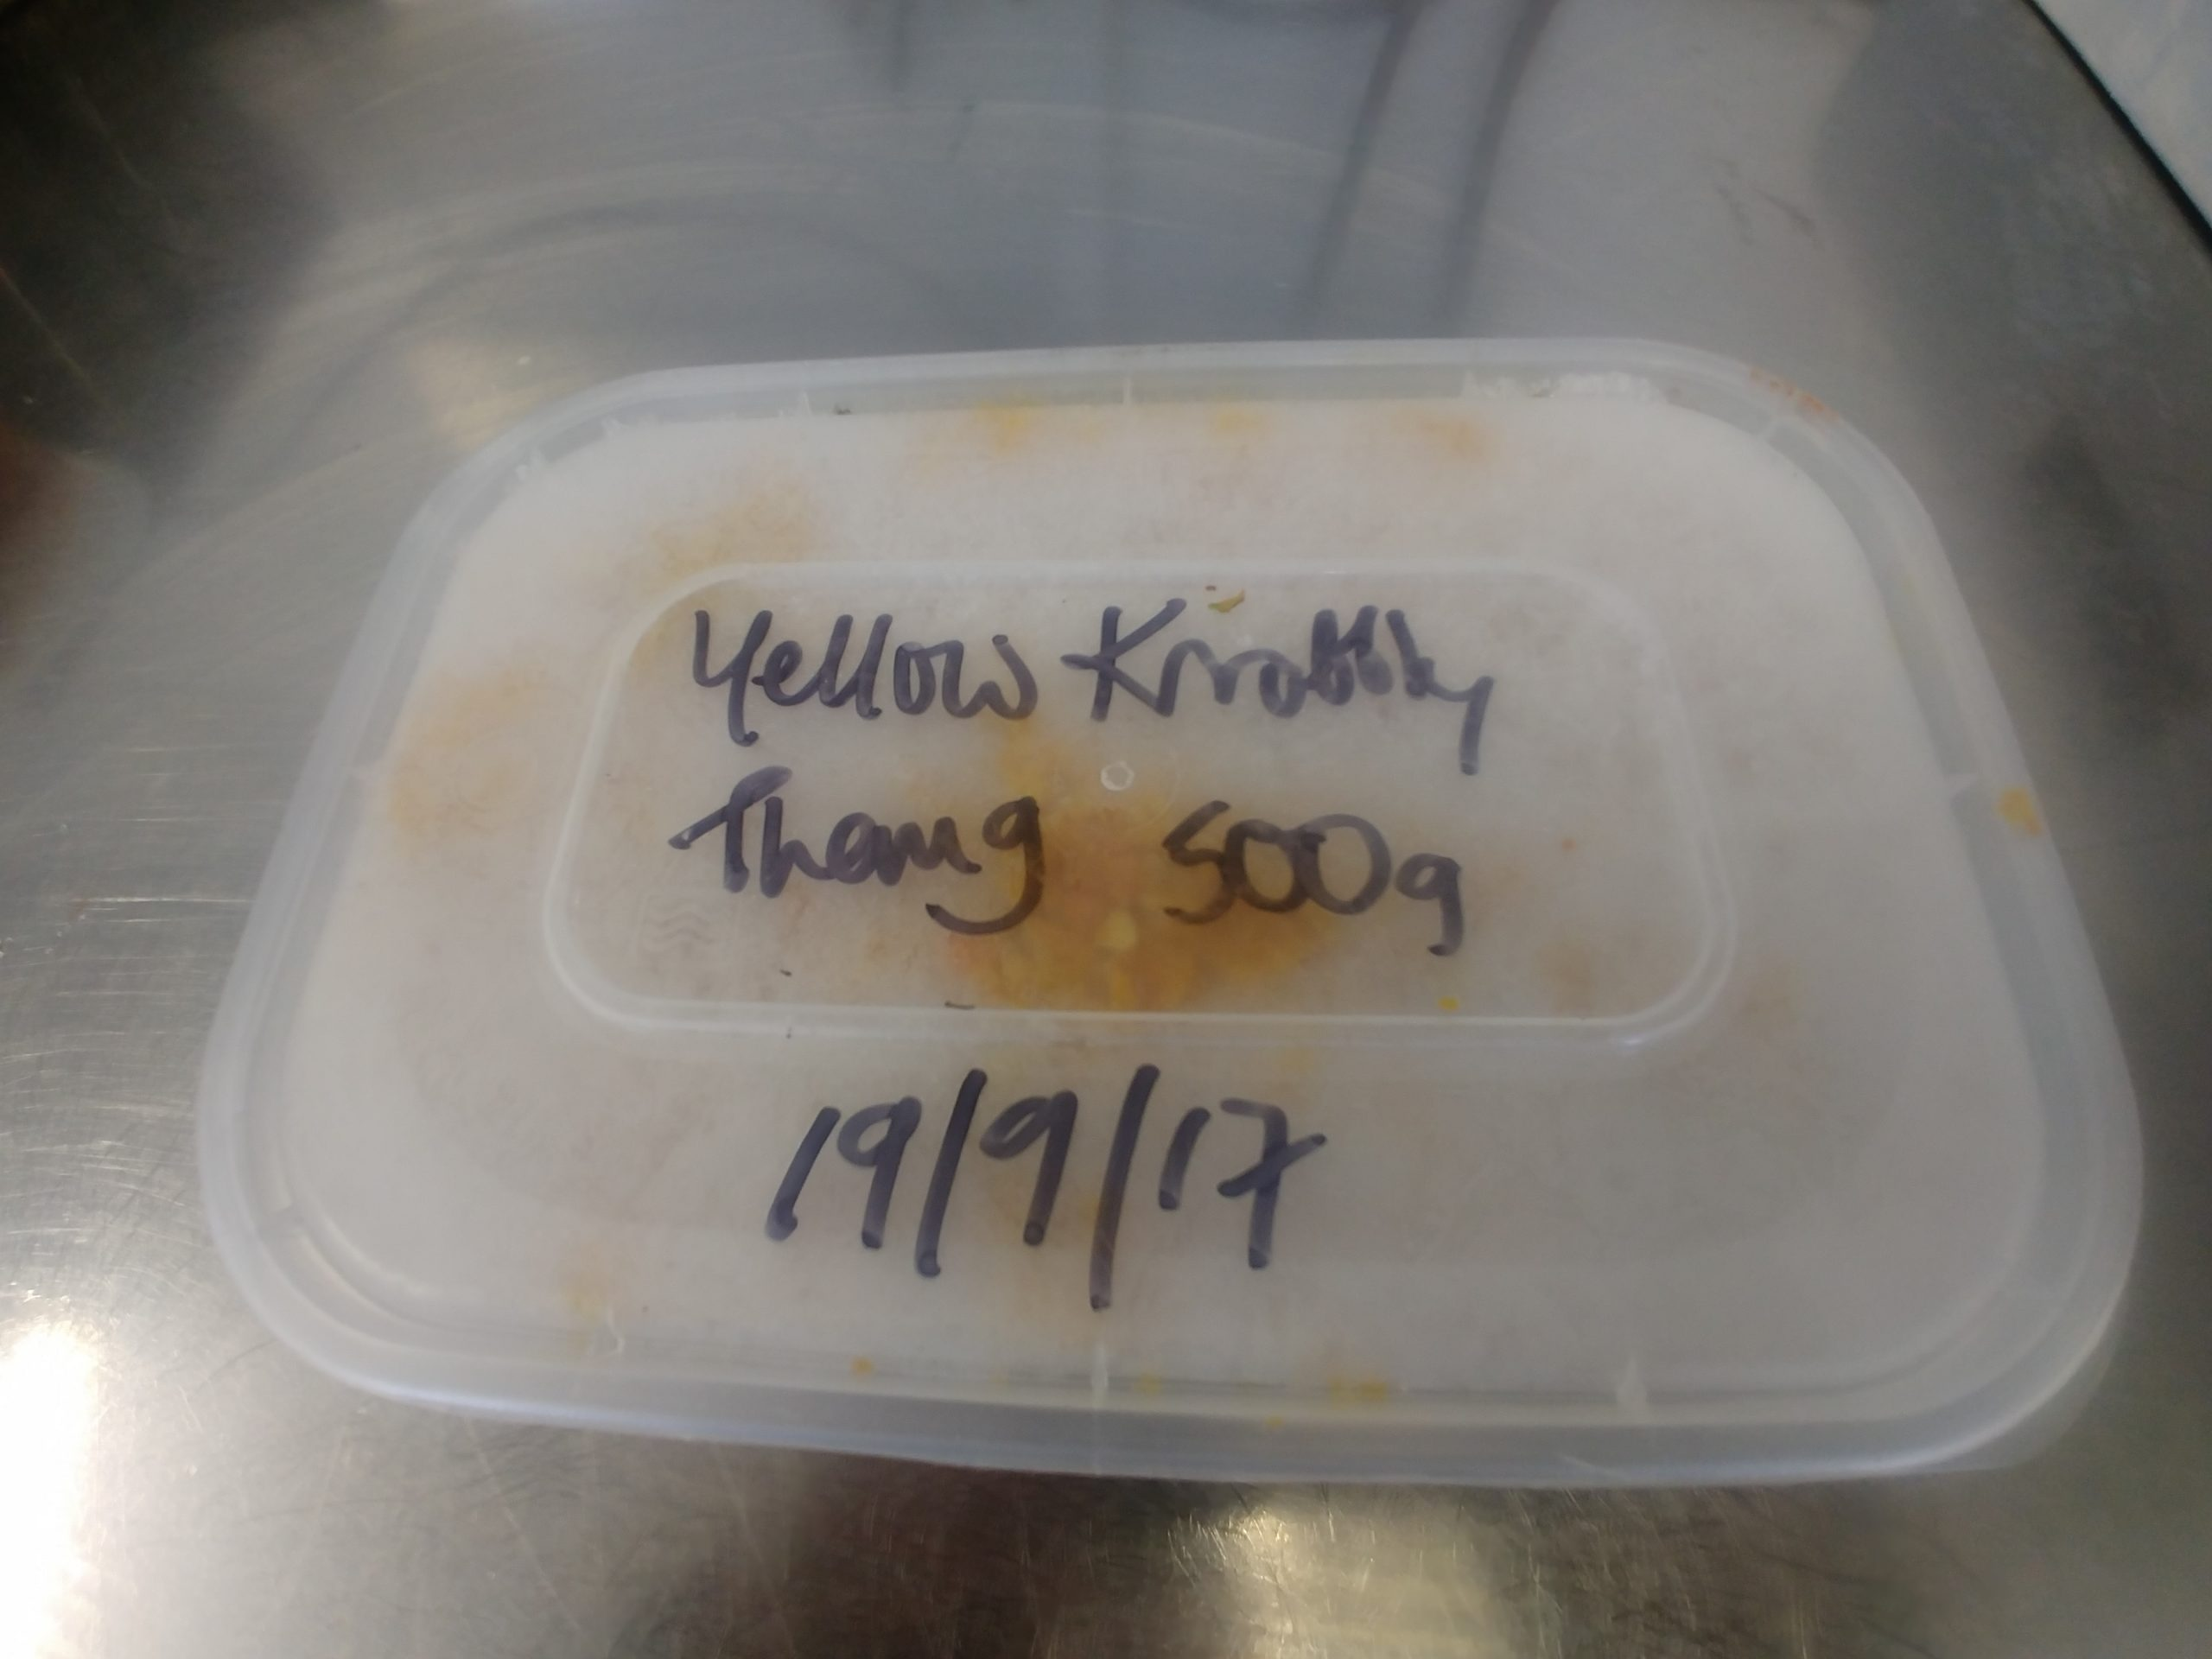 500g tub of frozen puree'd Yellow Nobbily Thang chillies.